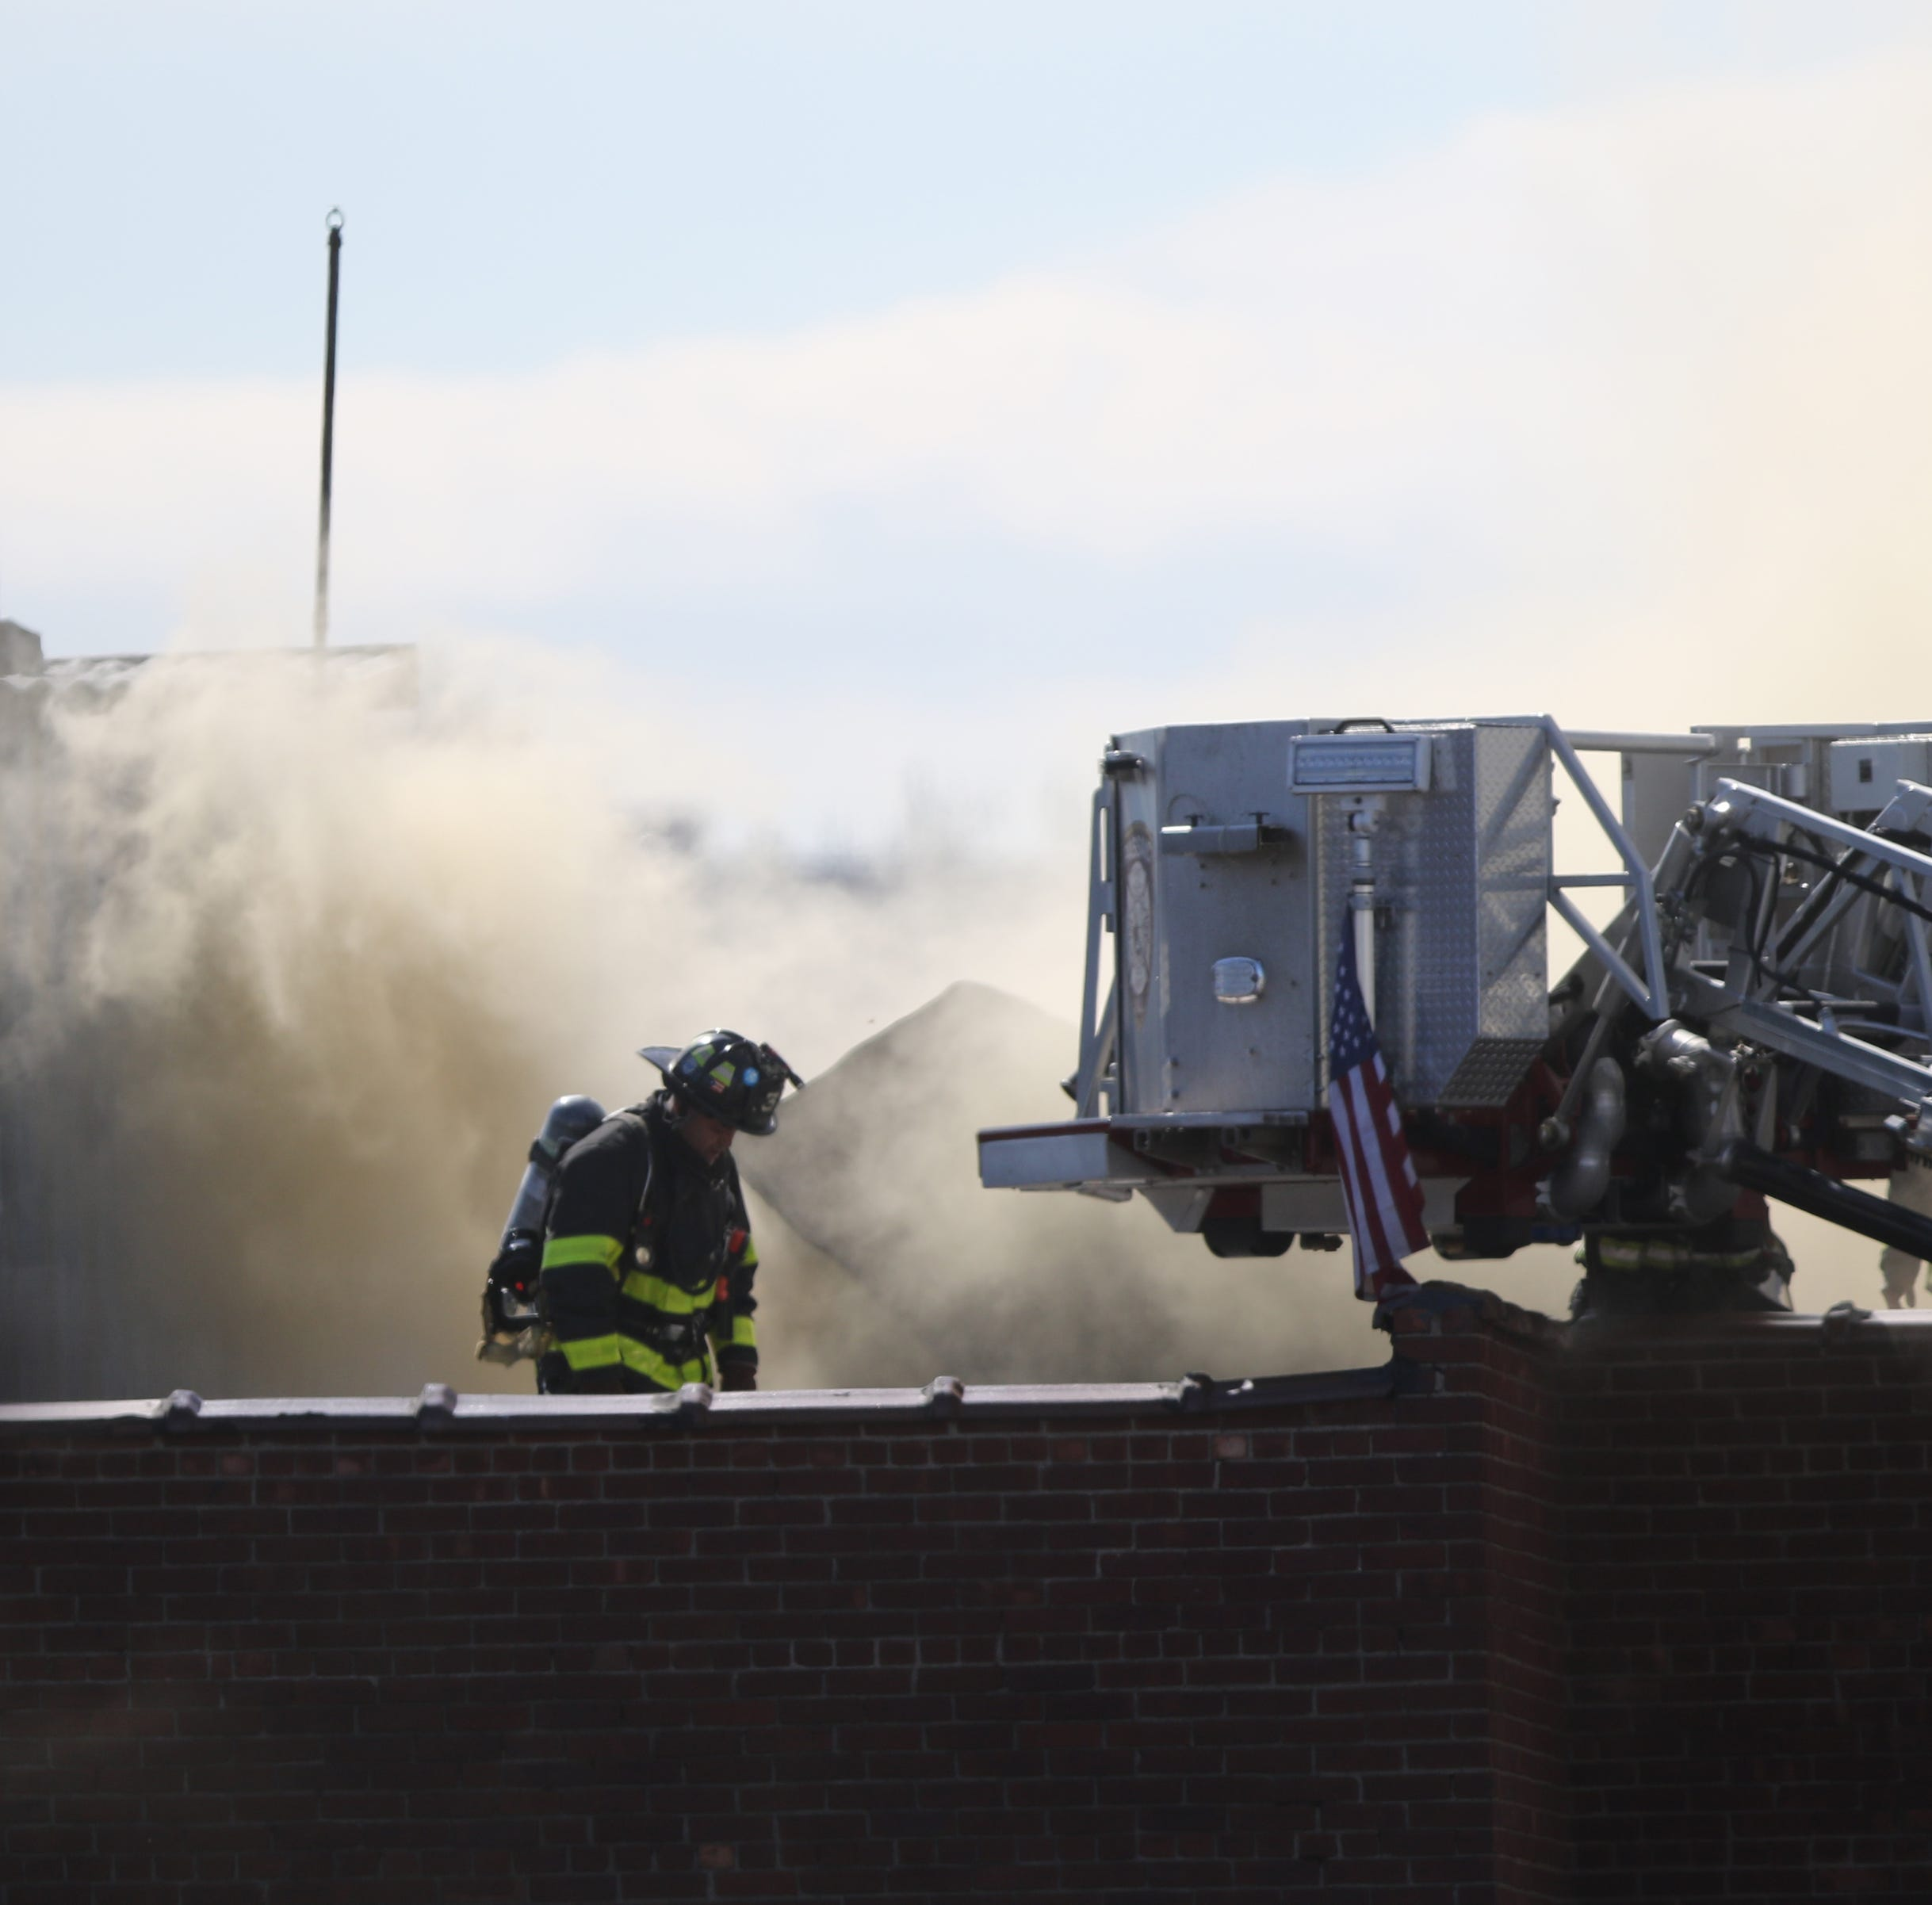 No serious injuries in four-alarm fire at Passaic mattress warehouse